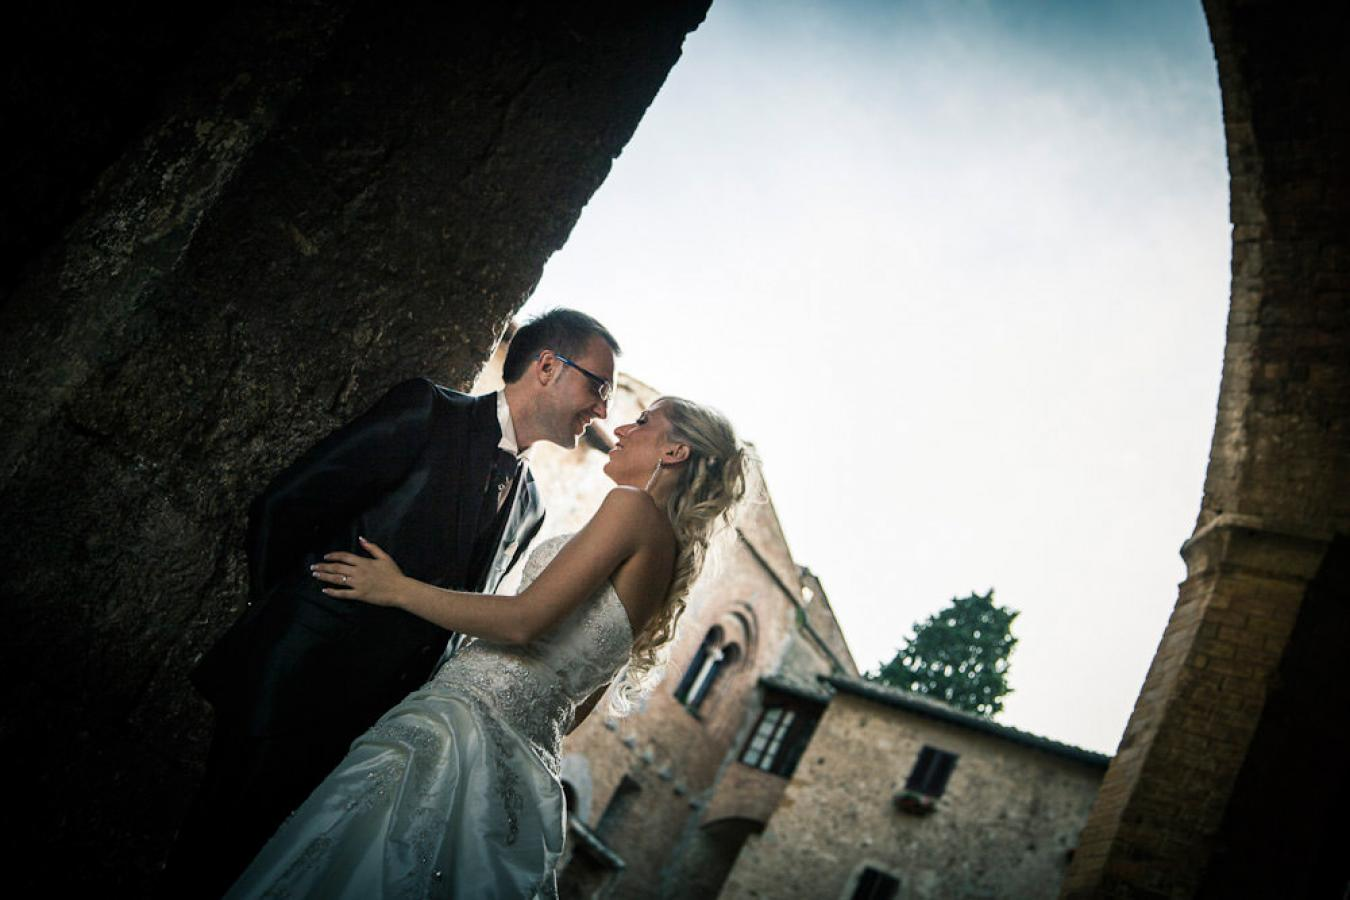 foto 4 Wedding Photography in Tuscany - San Gimignano with Giacomo and Irene